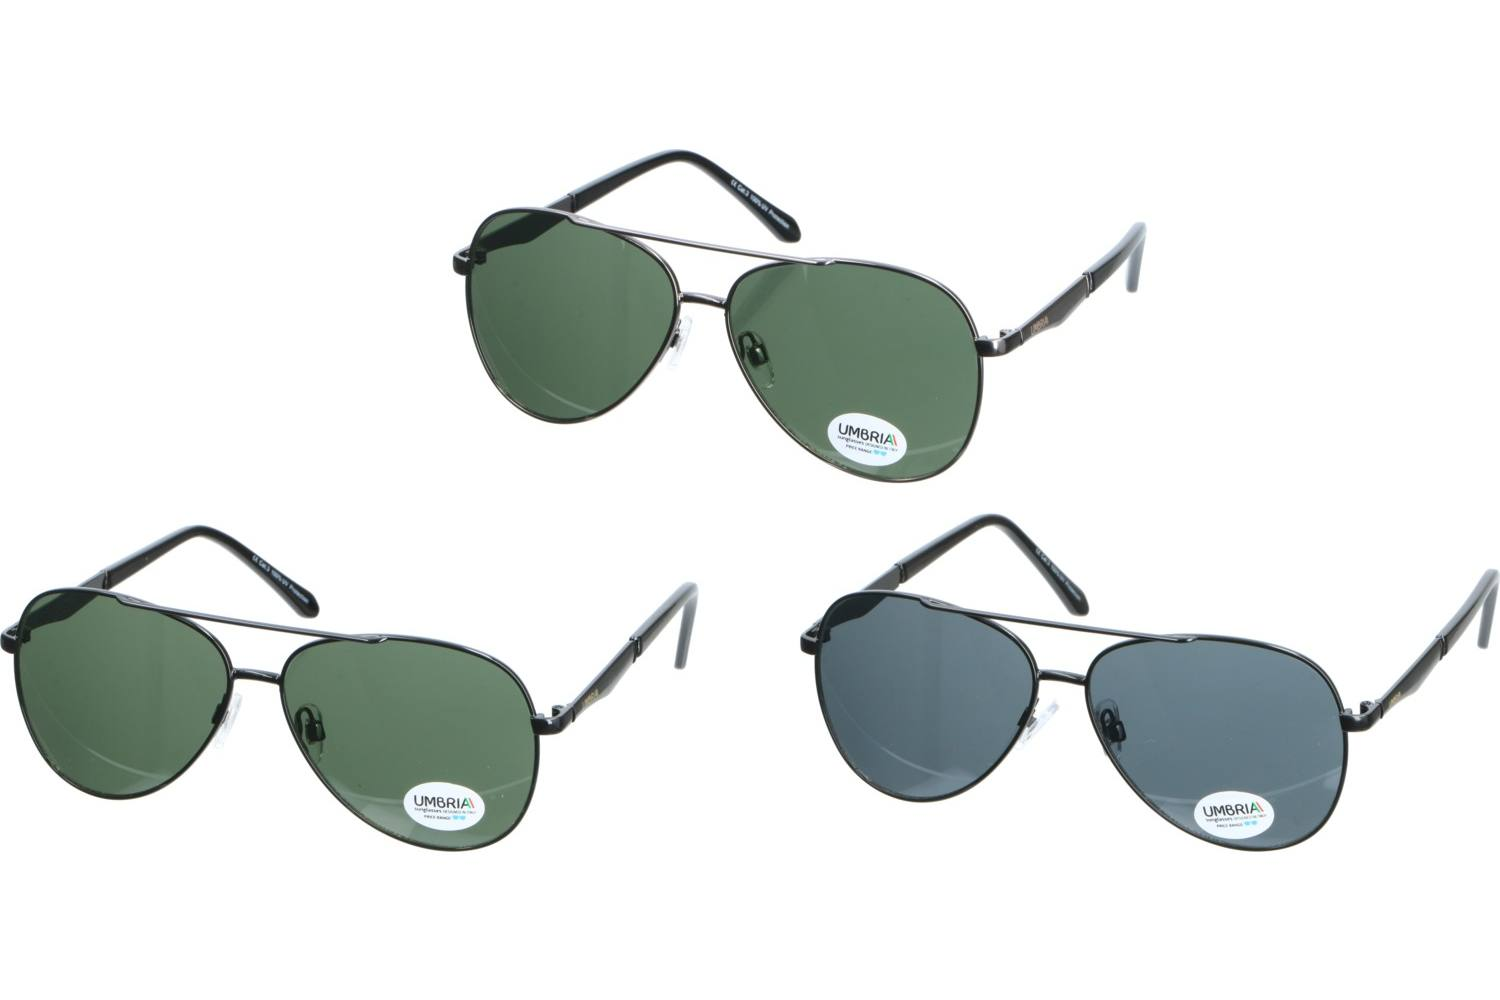 Sunglasses, Unisex, £ 9,95, 19250 2